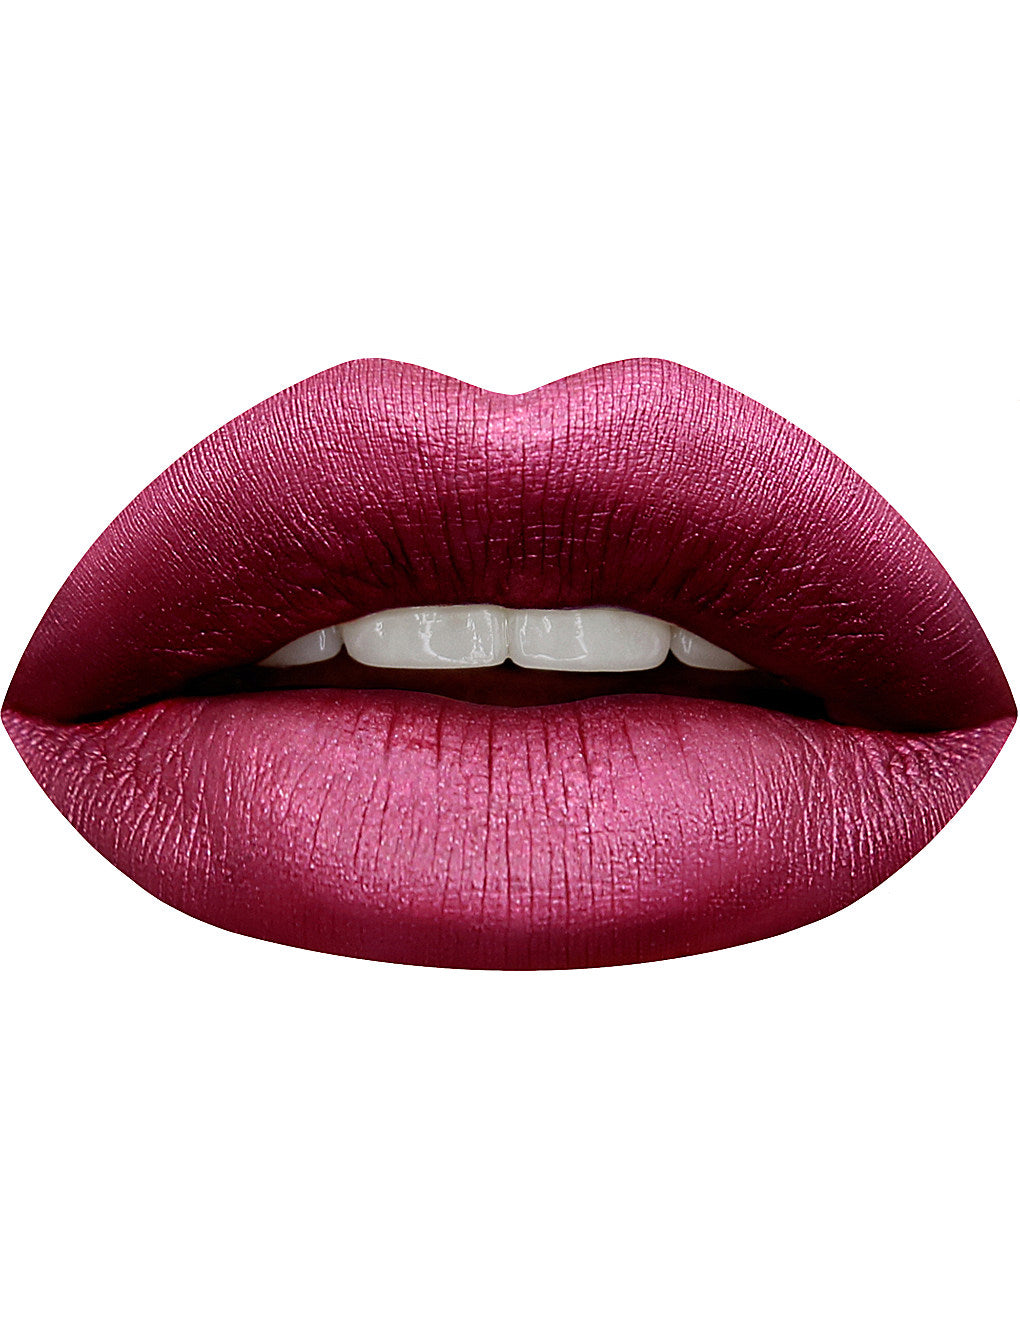 Special Effects Liquid Matte Lipstick